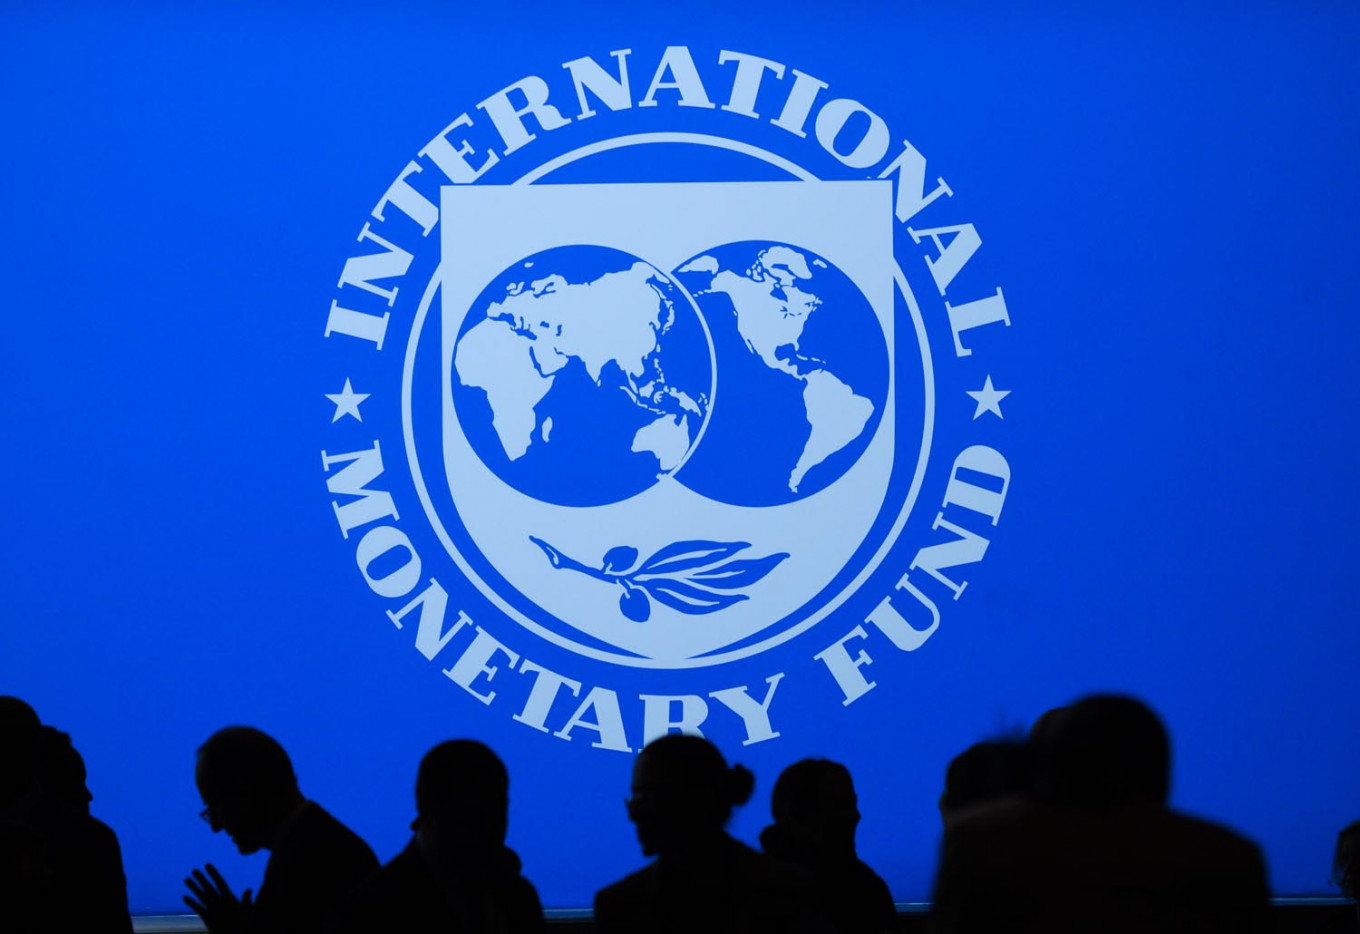 International Monetary Fund projects drop in Ukraine's GDP to -7.7% due to coronavirus